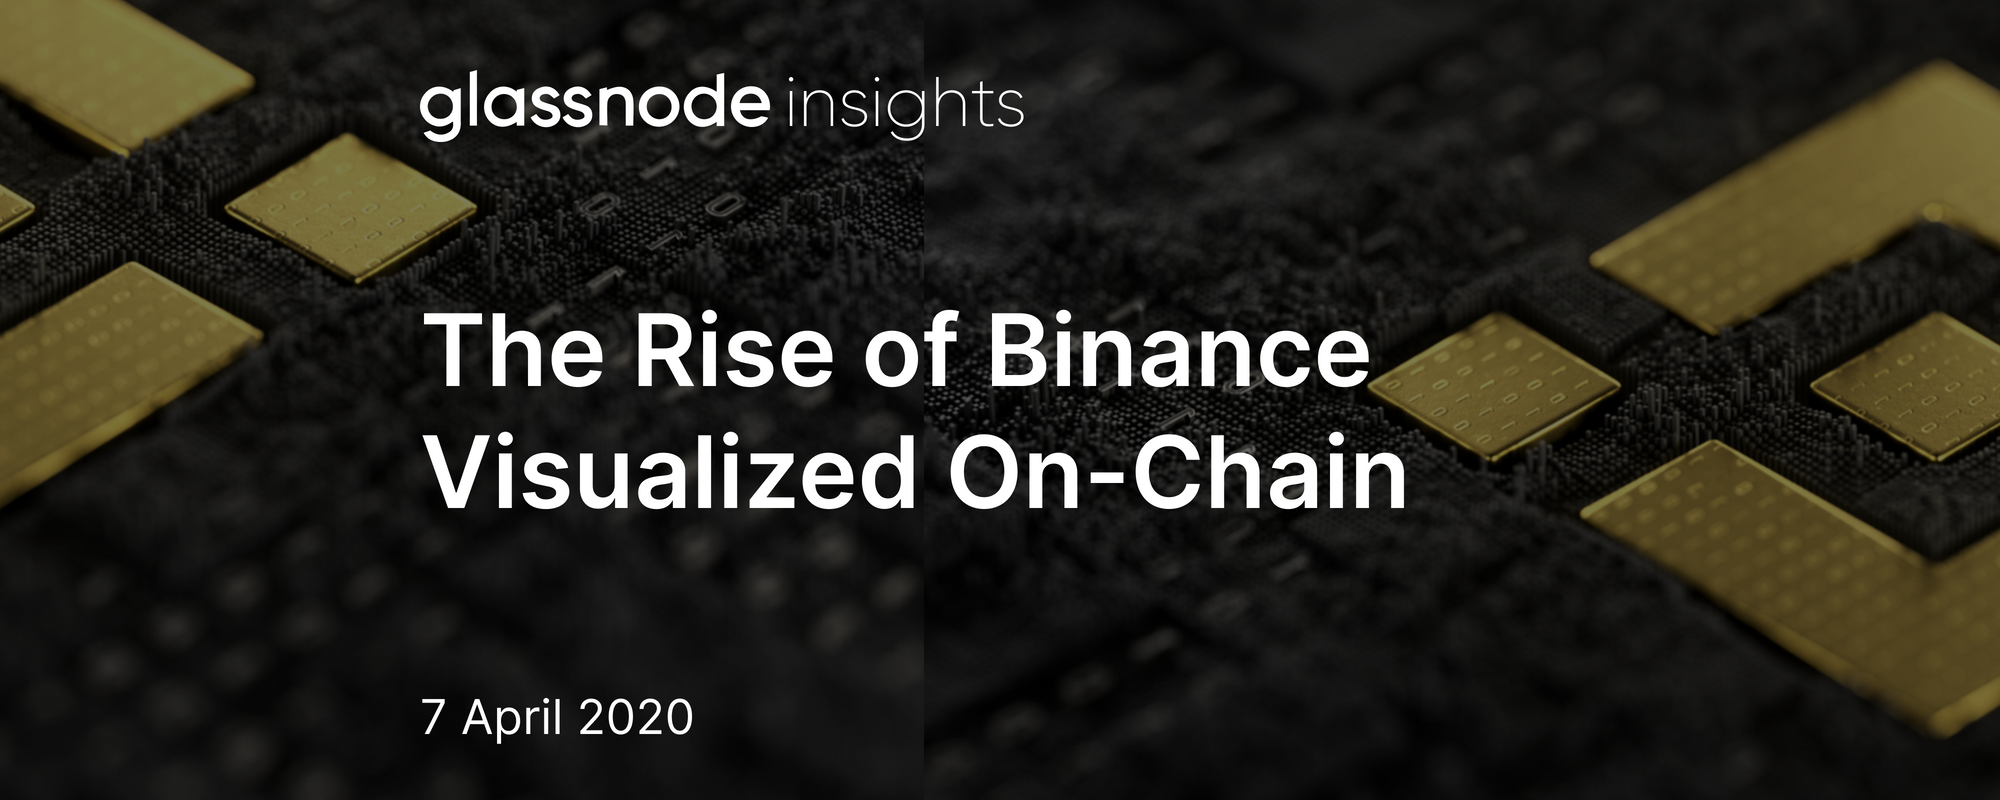 The Rise of Binance Visualized On-Chain